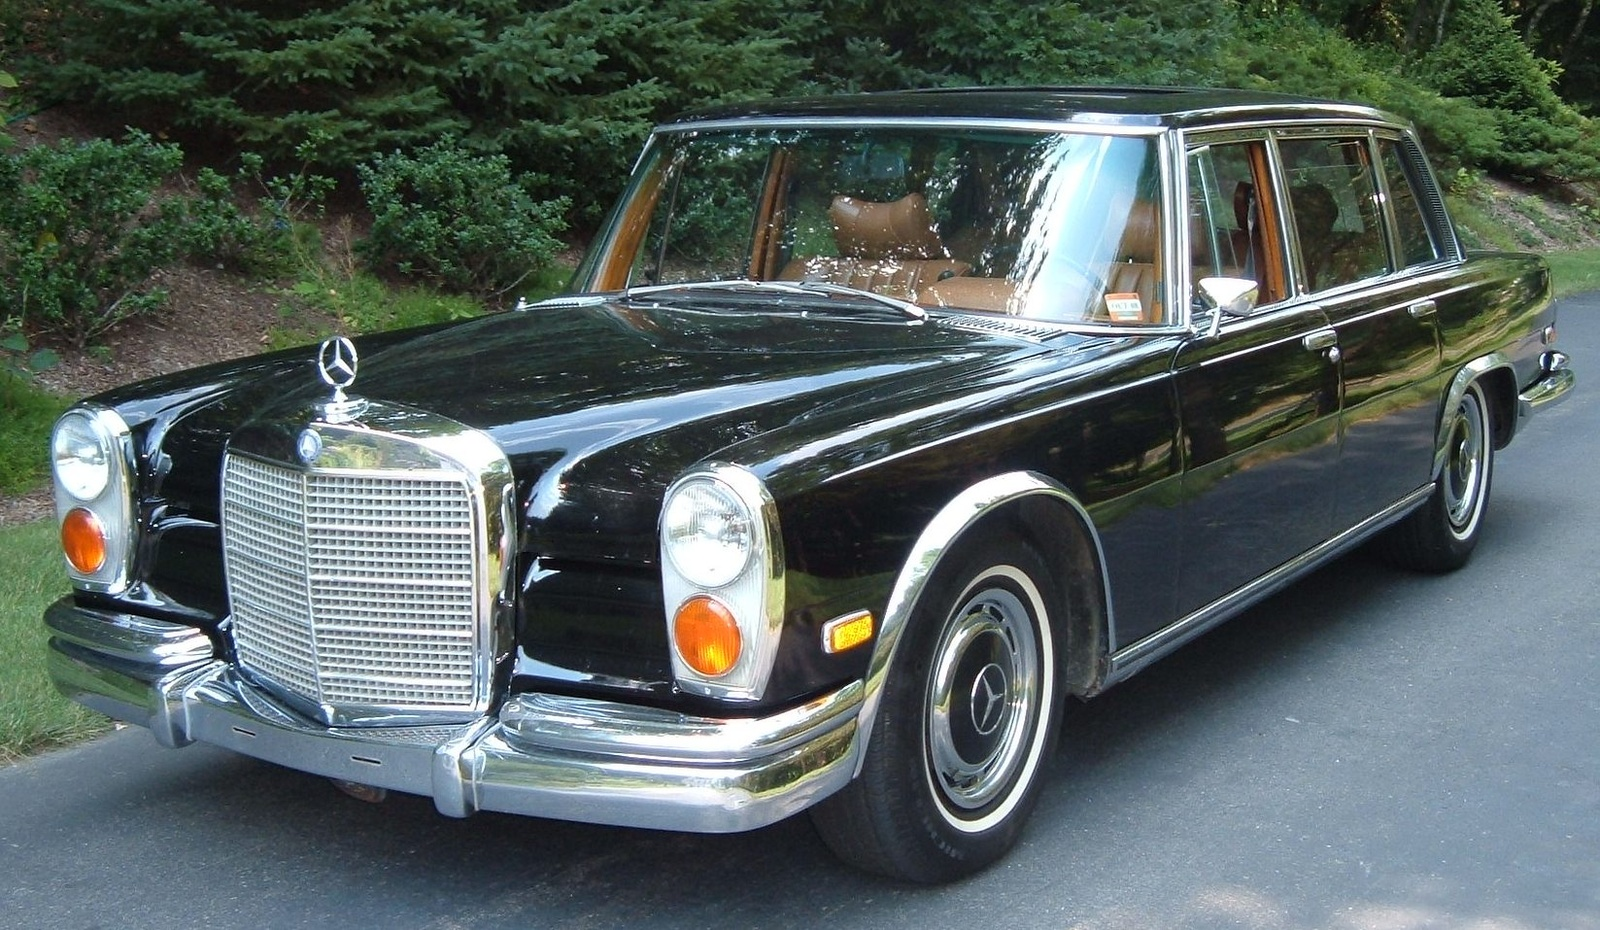 Benz s class w140 600sel or s600 m120 394 hp w140 information -  1992 600 Class 13